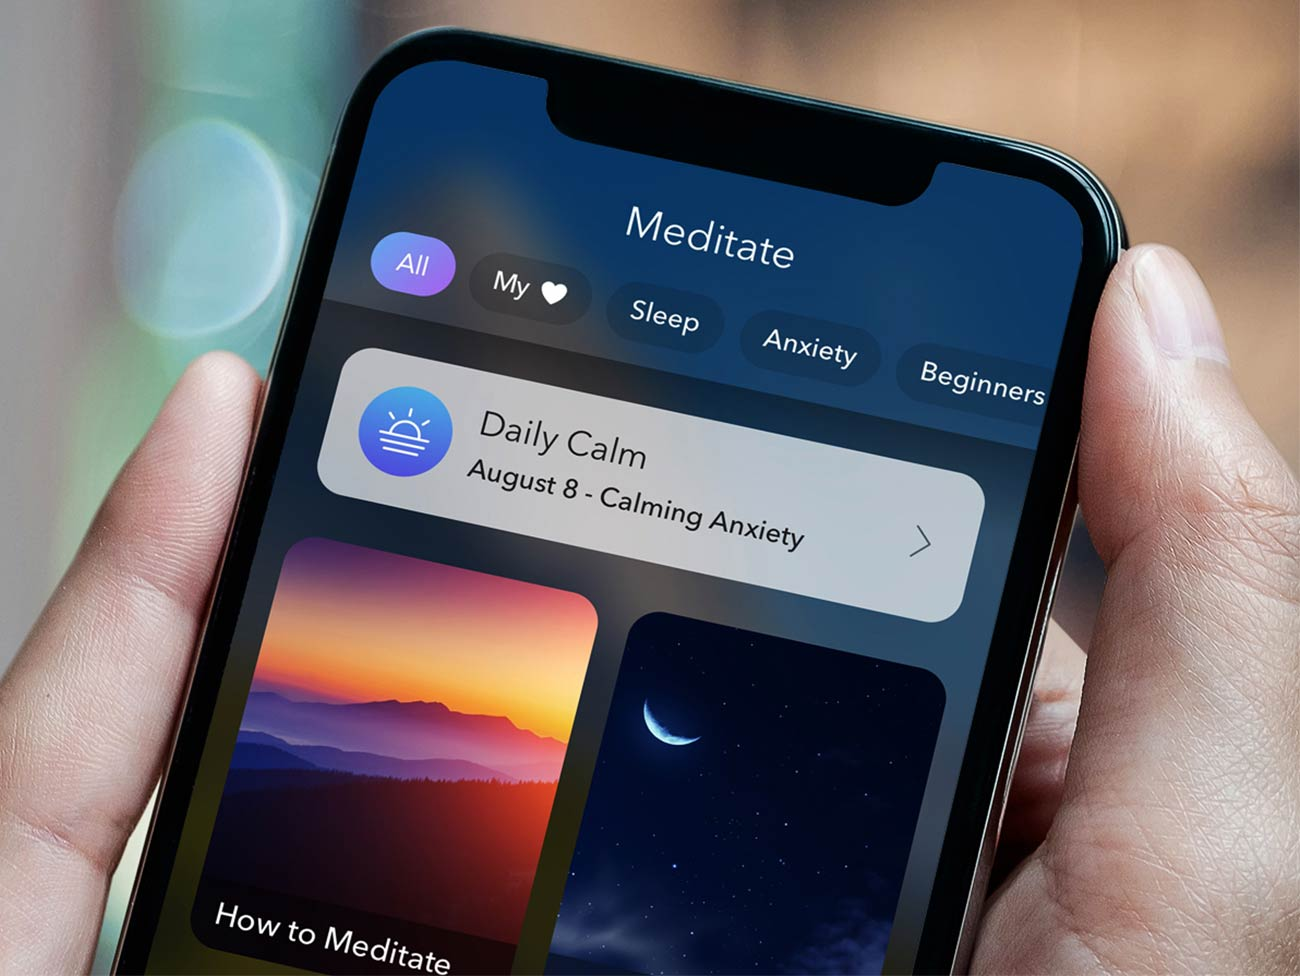 mobile phone displaying the Calm app